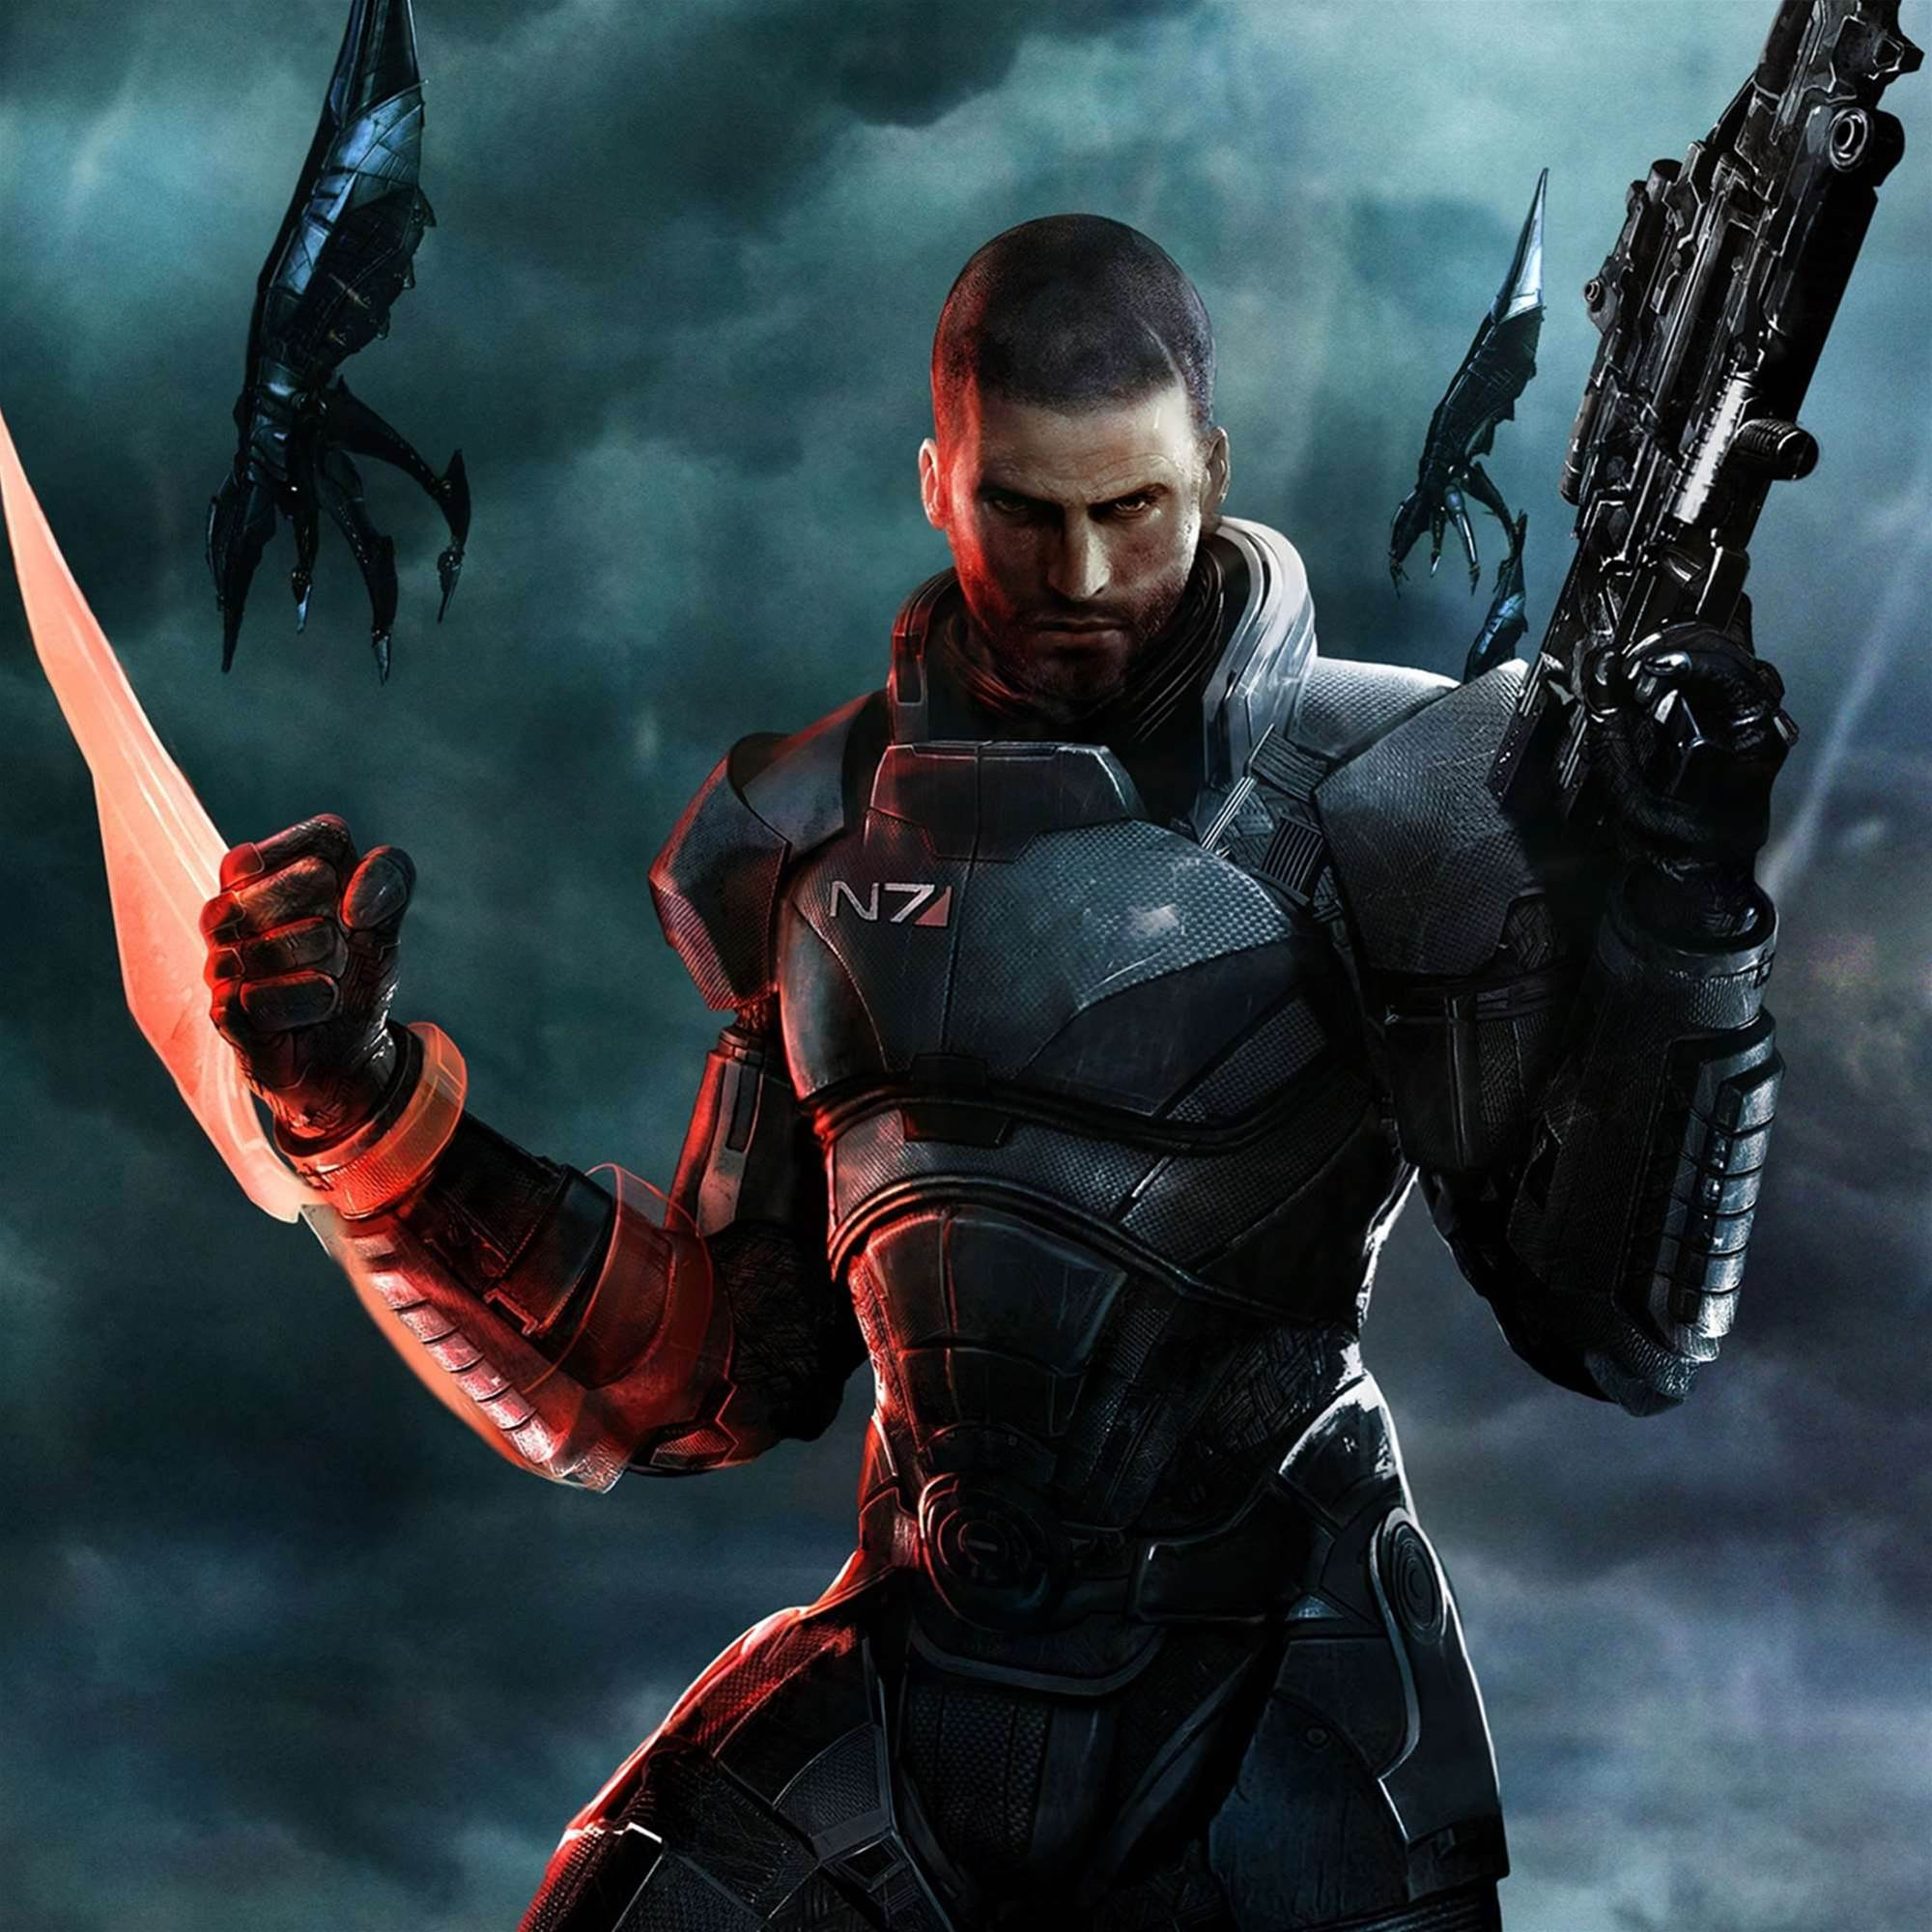 BioWare announces its solution for the division over Mass Effect 3's ending